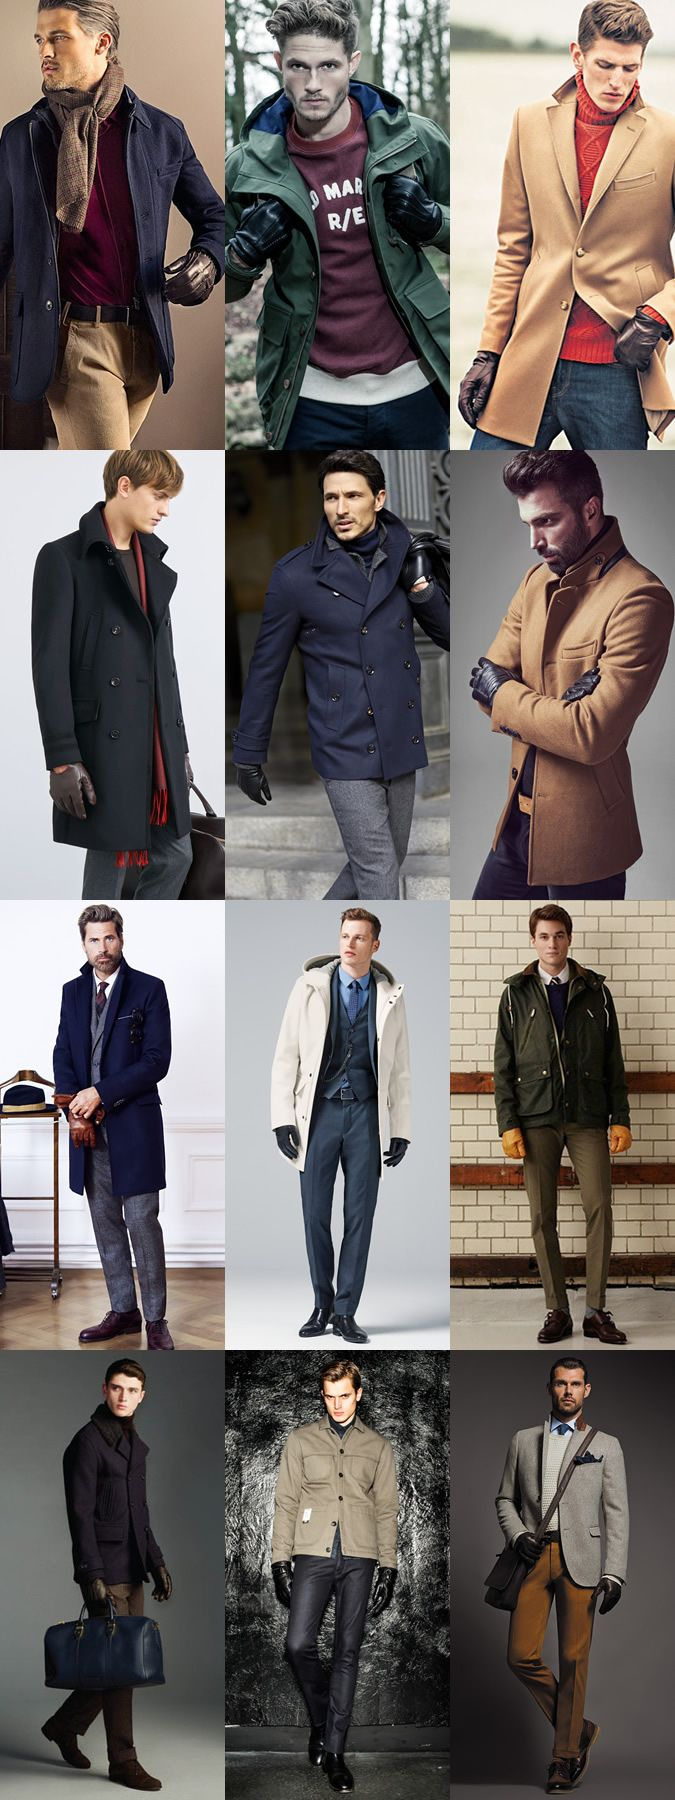 Mens leather gloves sydney - Men S Autumn Winter 2014 Accessory Trends Luxe Leather Gloves Lookbook Inspiration Thestylesight